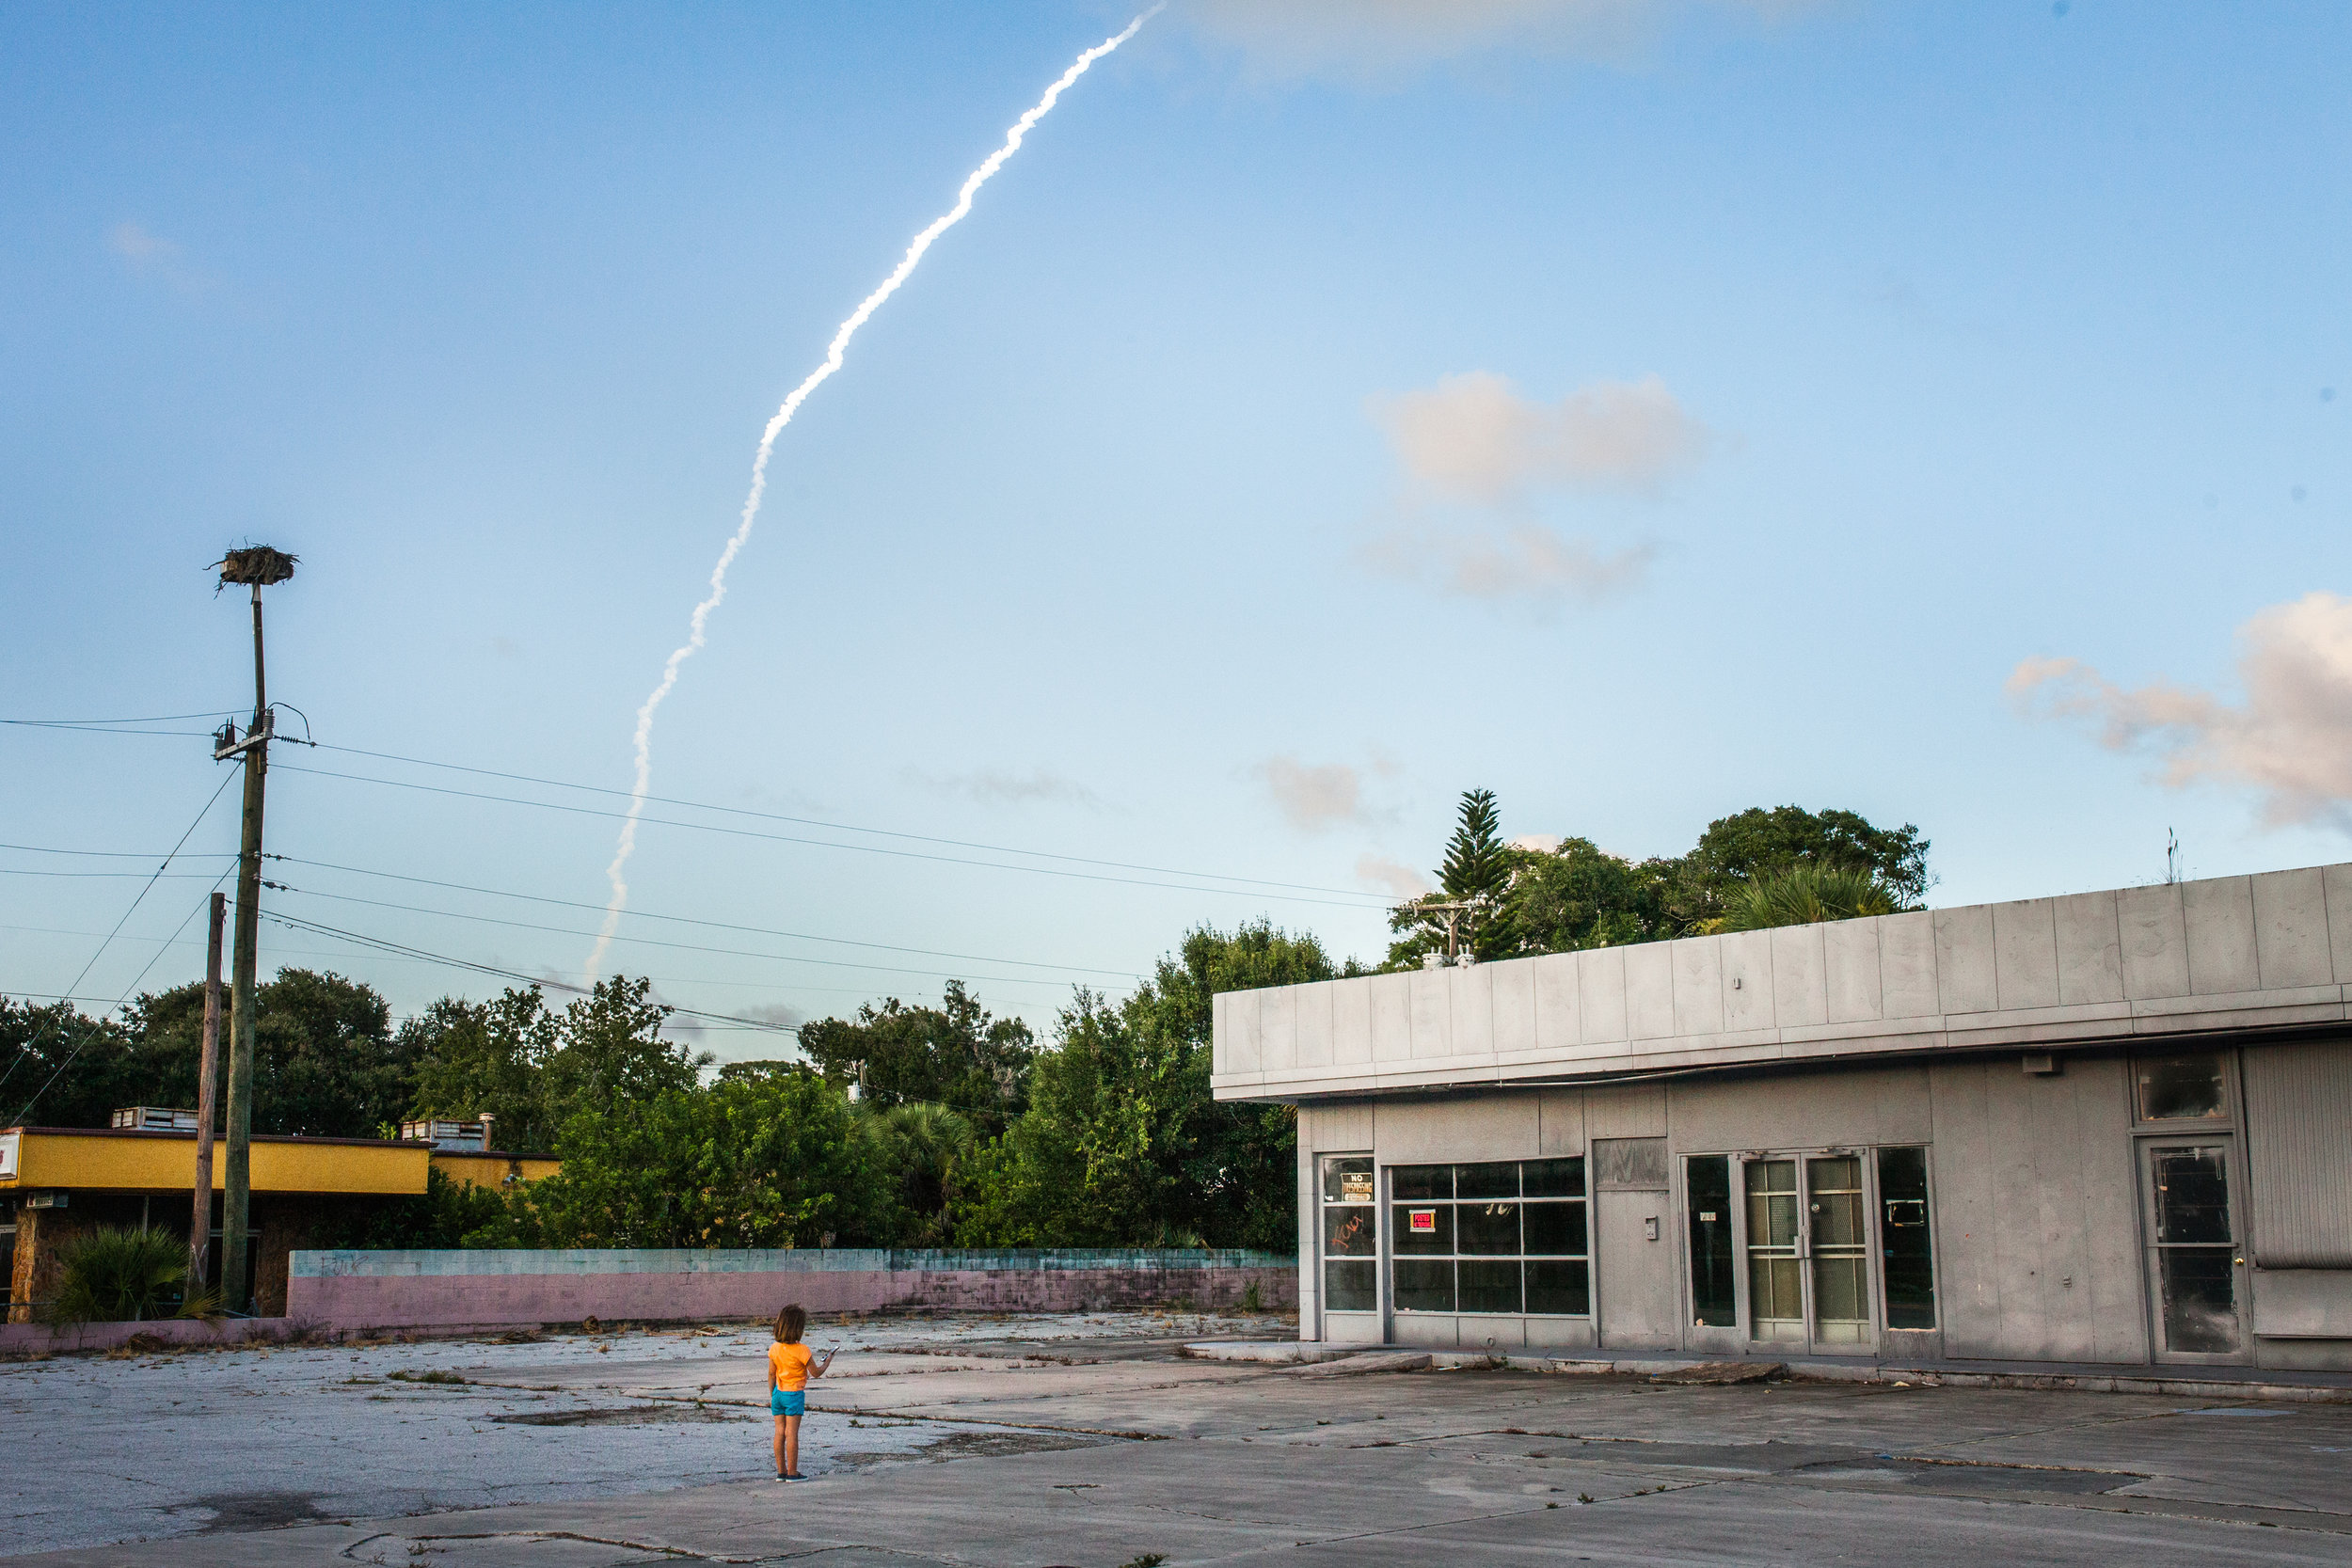 Rocket Launch, Cape Canaveral, 2016